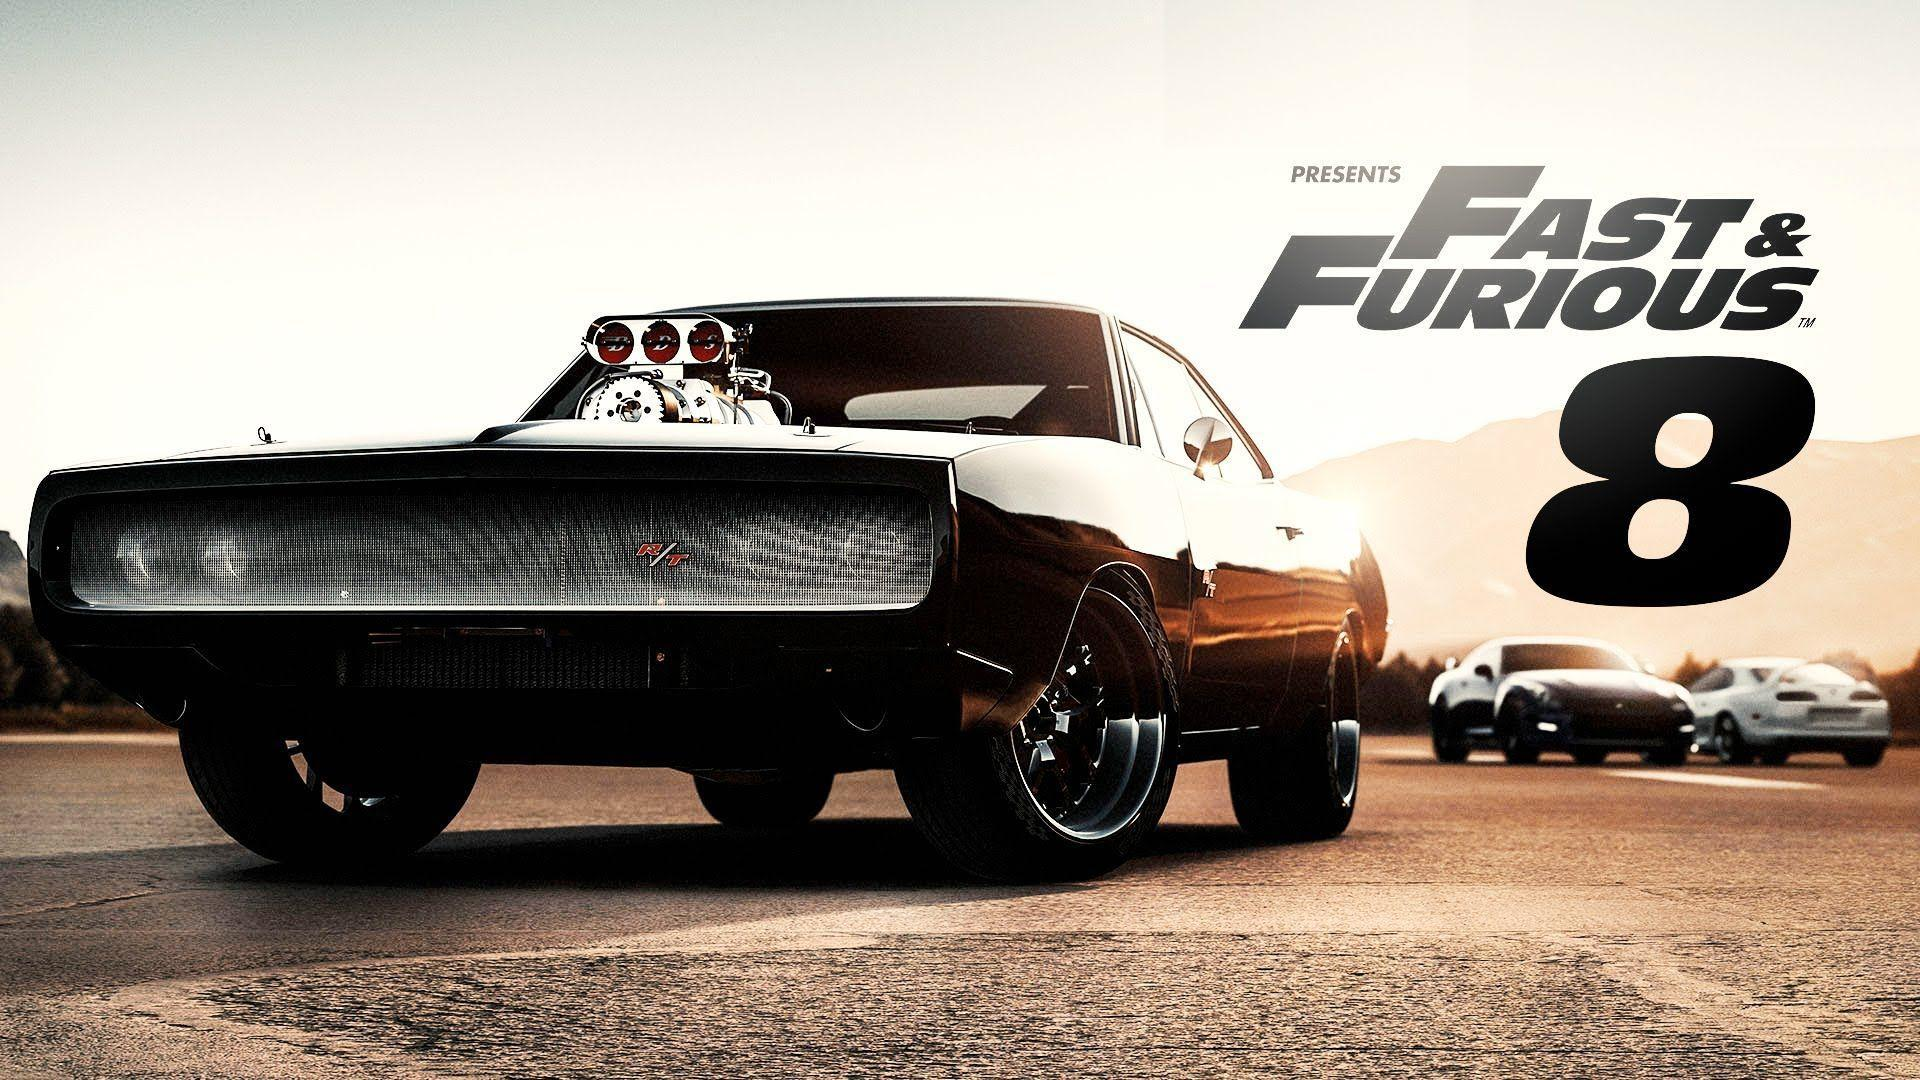 8 Fast And Furious Wallpapers Top Free 8 Fast And Furious